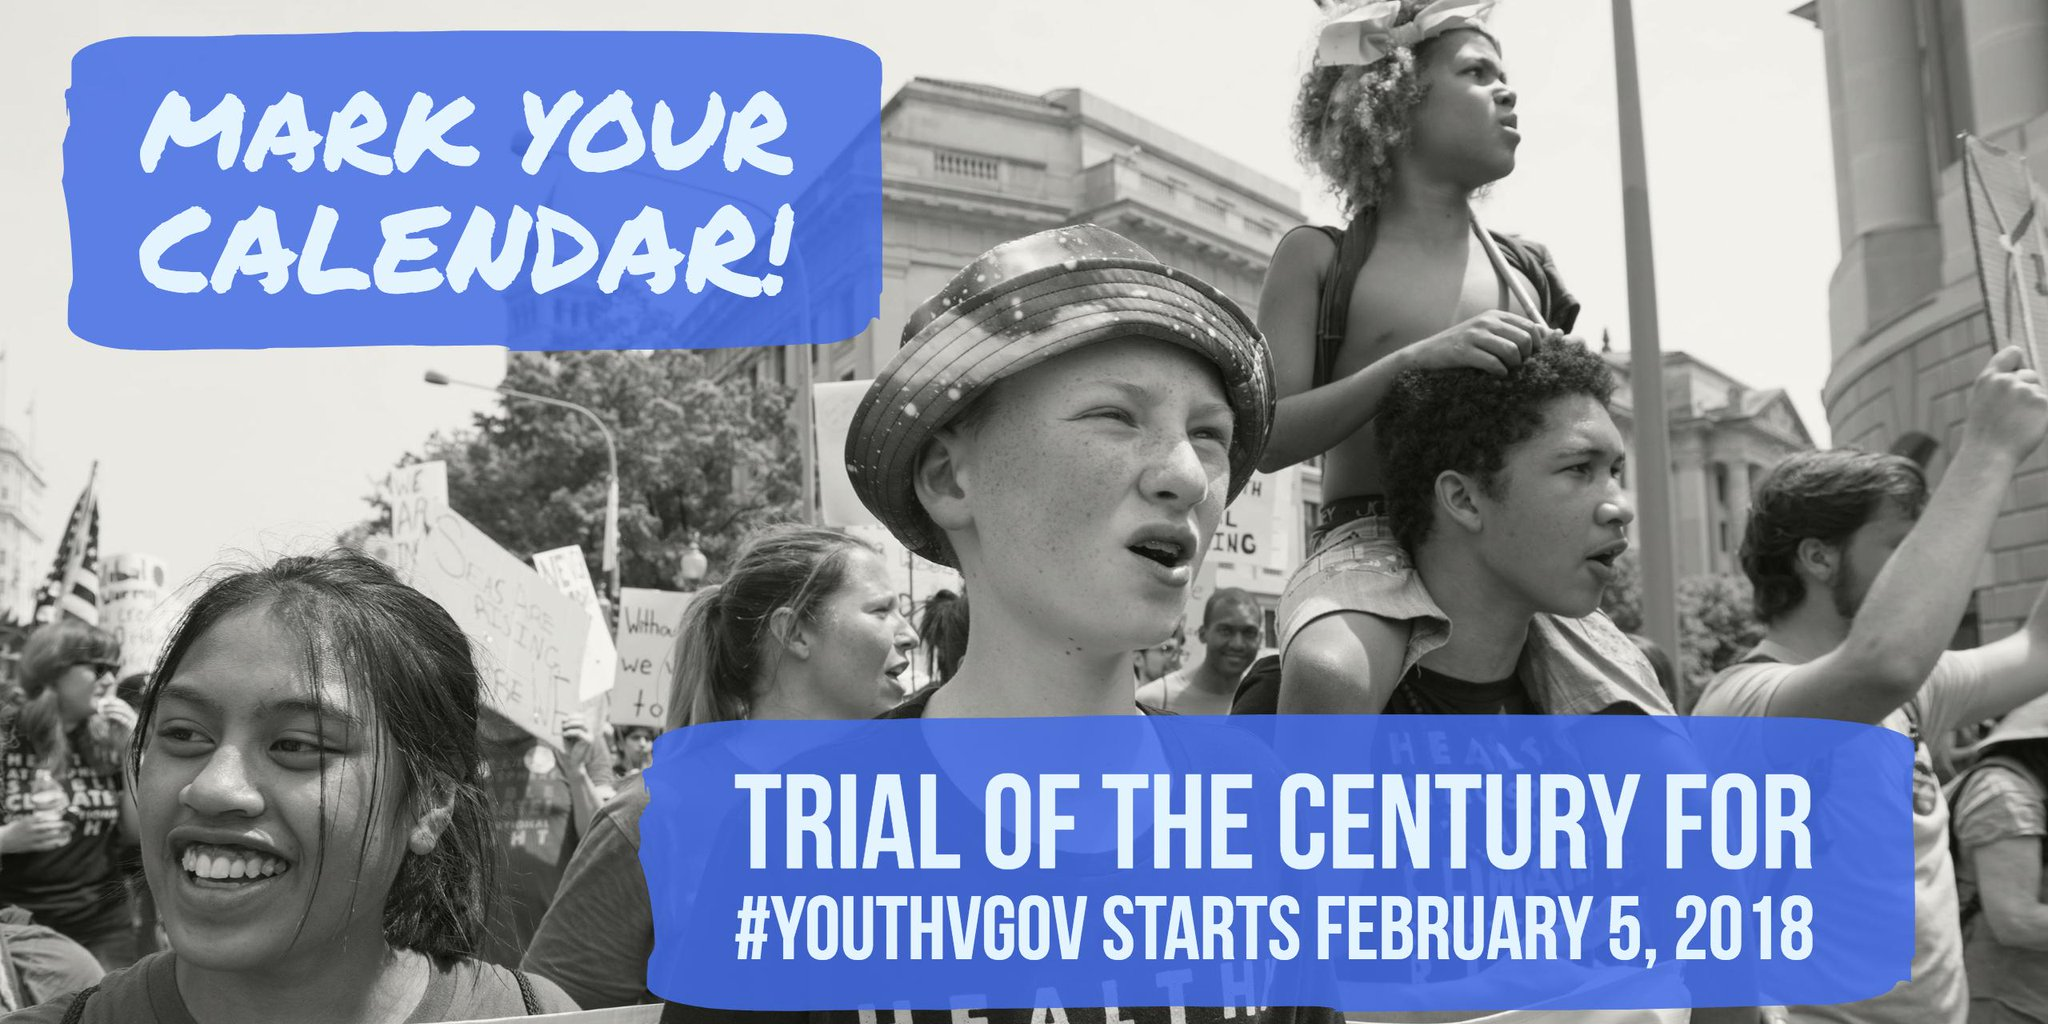 YouthVGov Children's Climate Lawsuit gets trial date feb 5